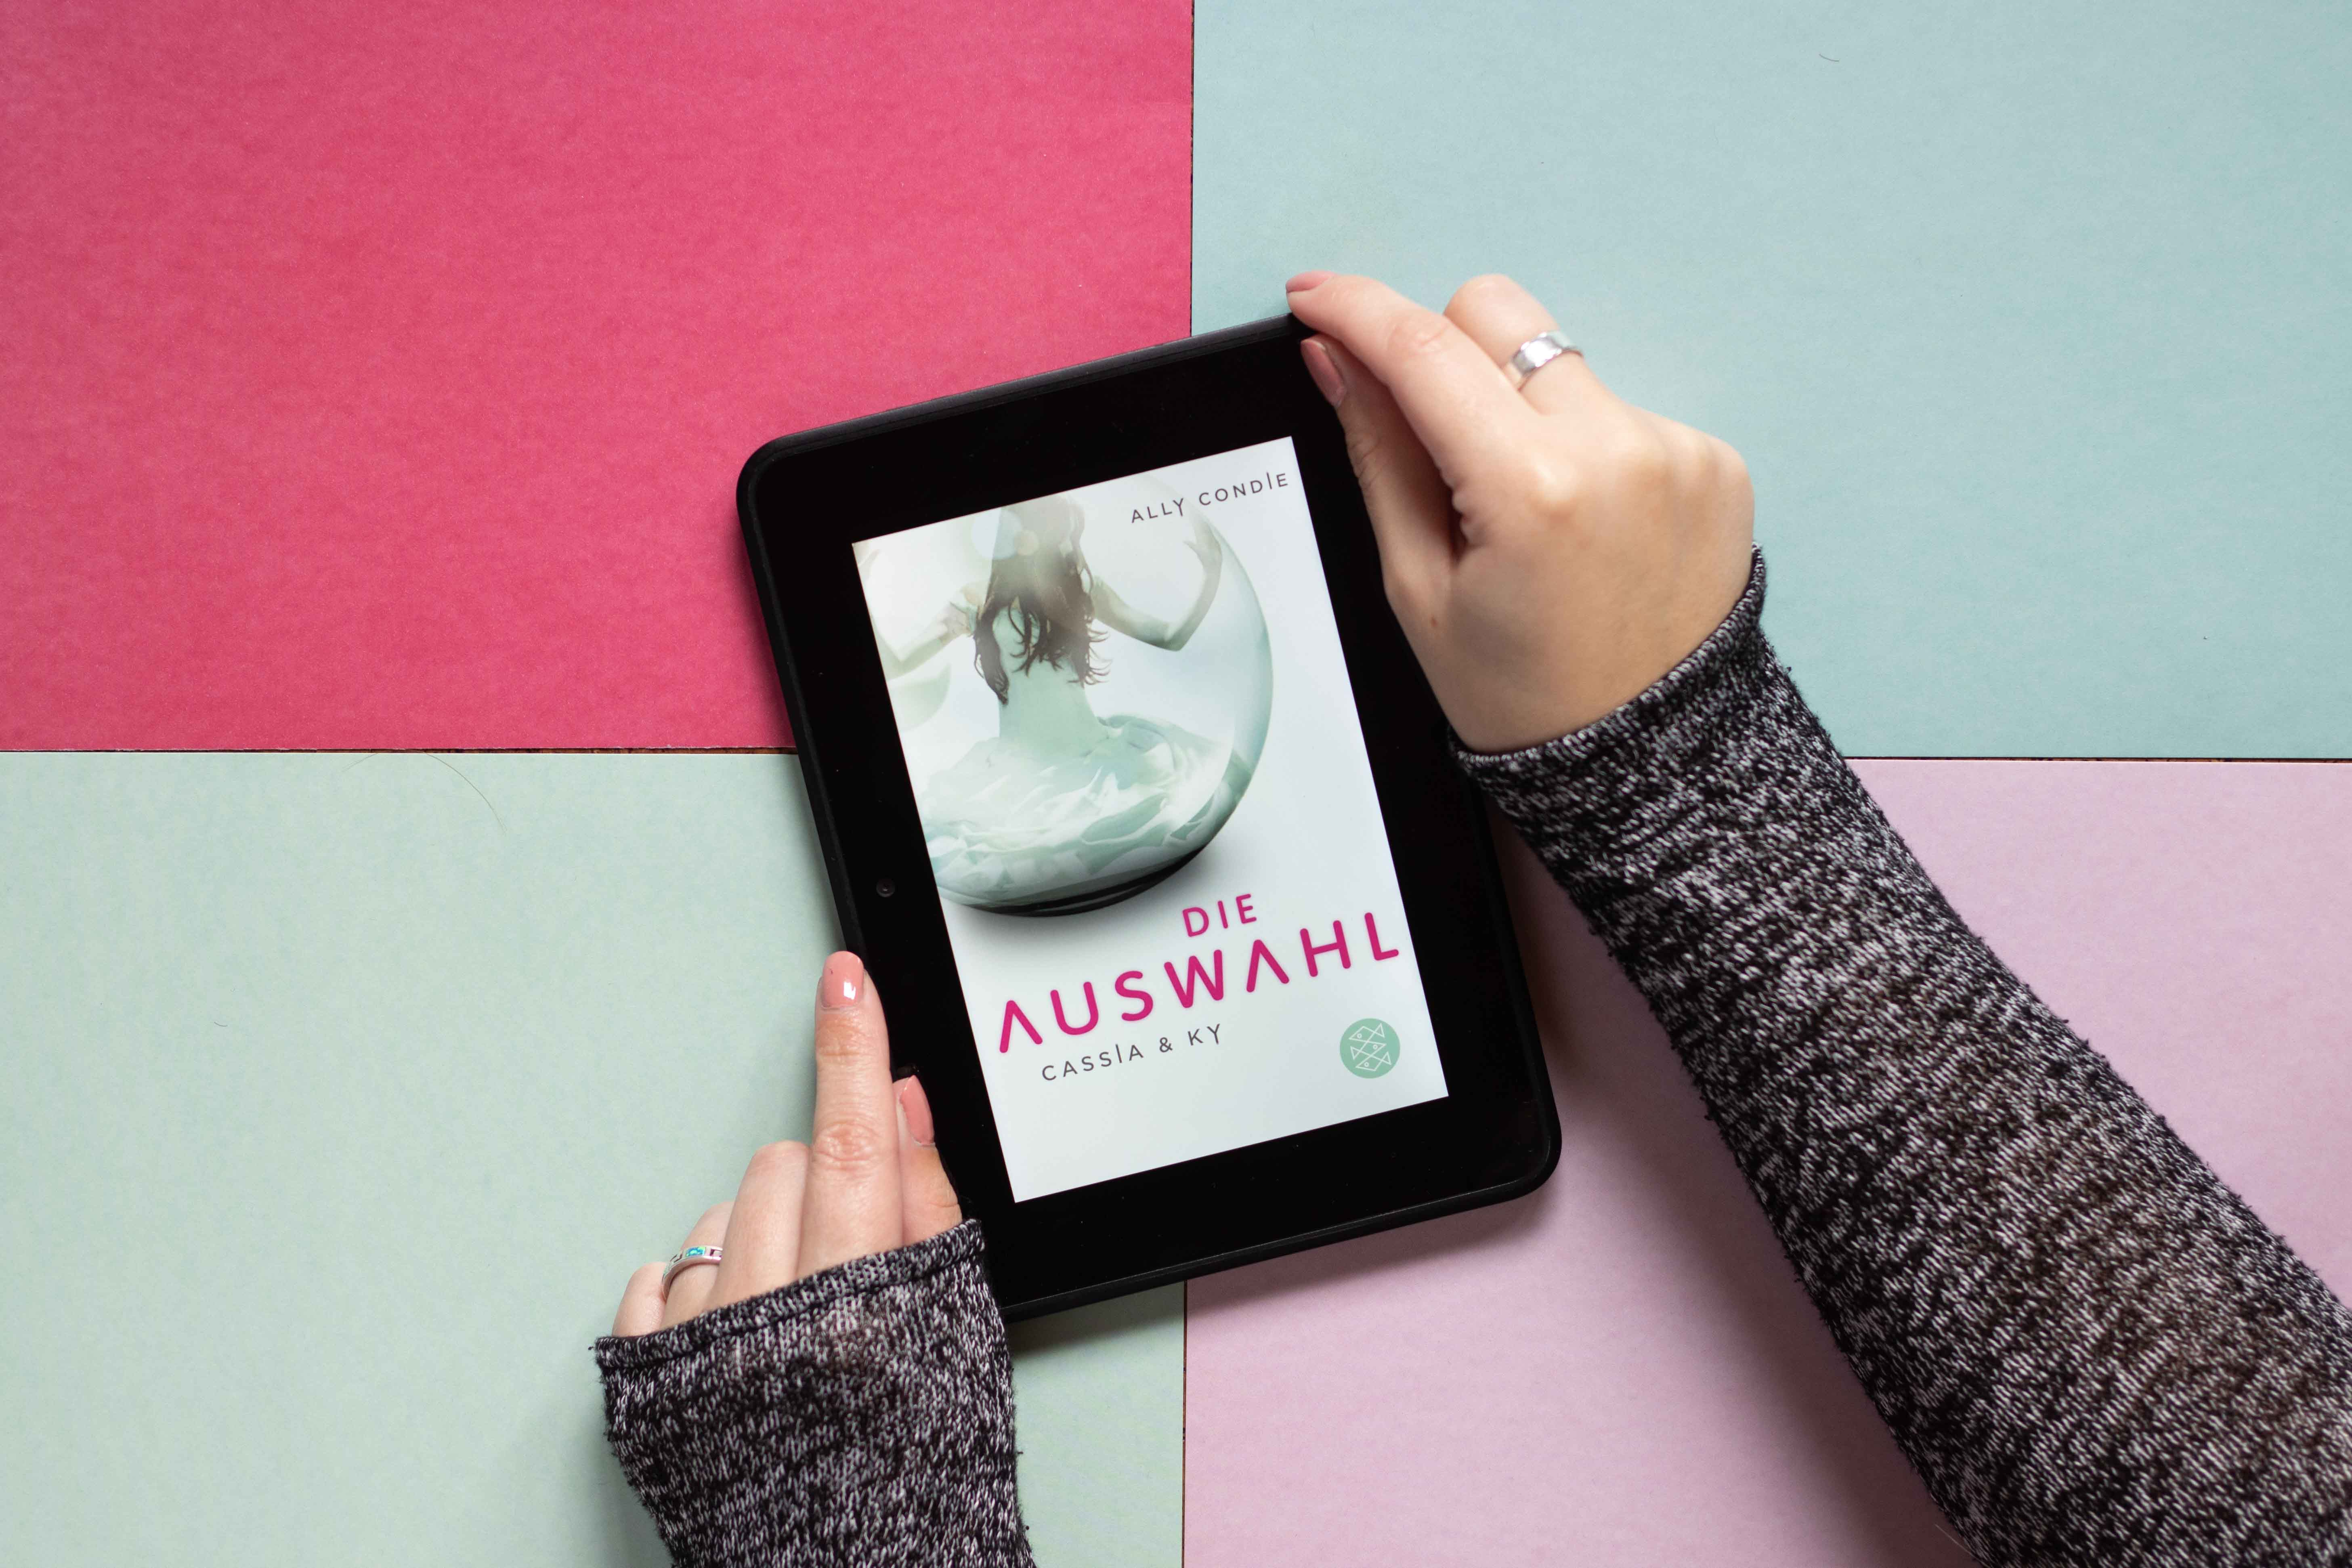 Cassia & Ky – Die Auswahl | Ally Condie